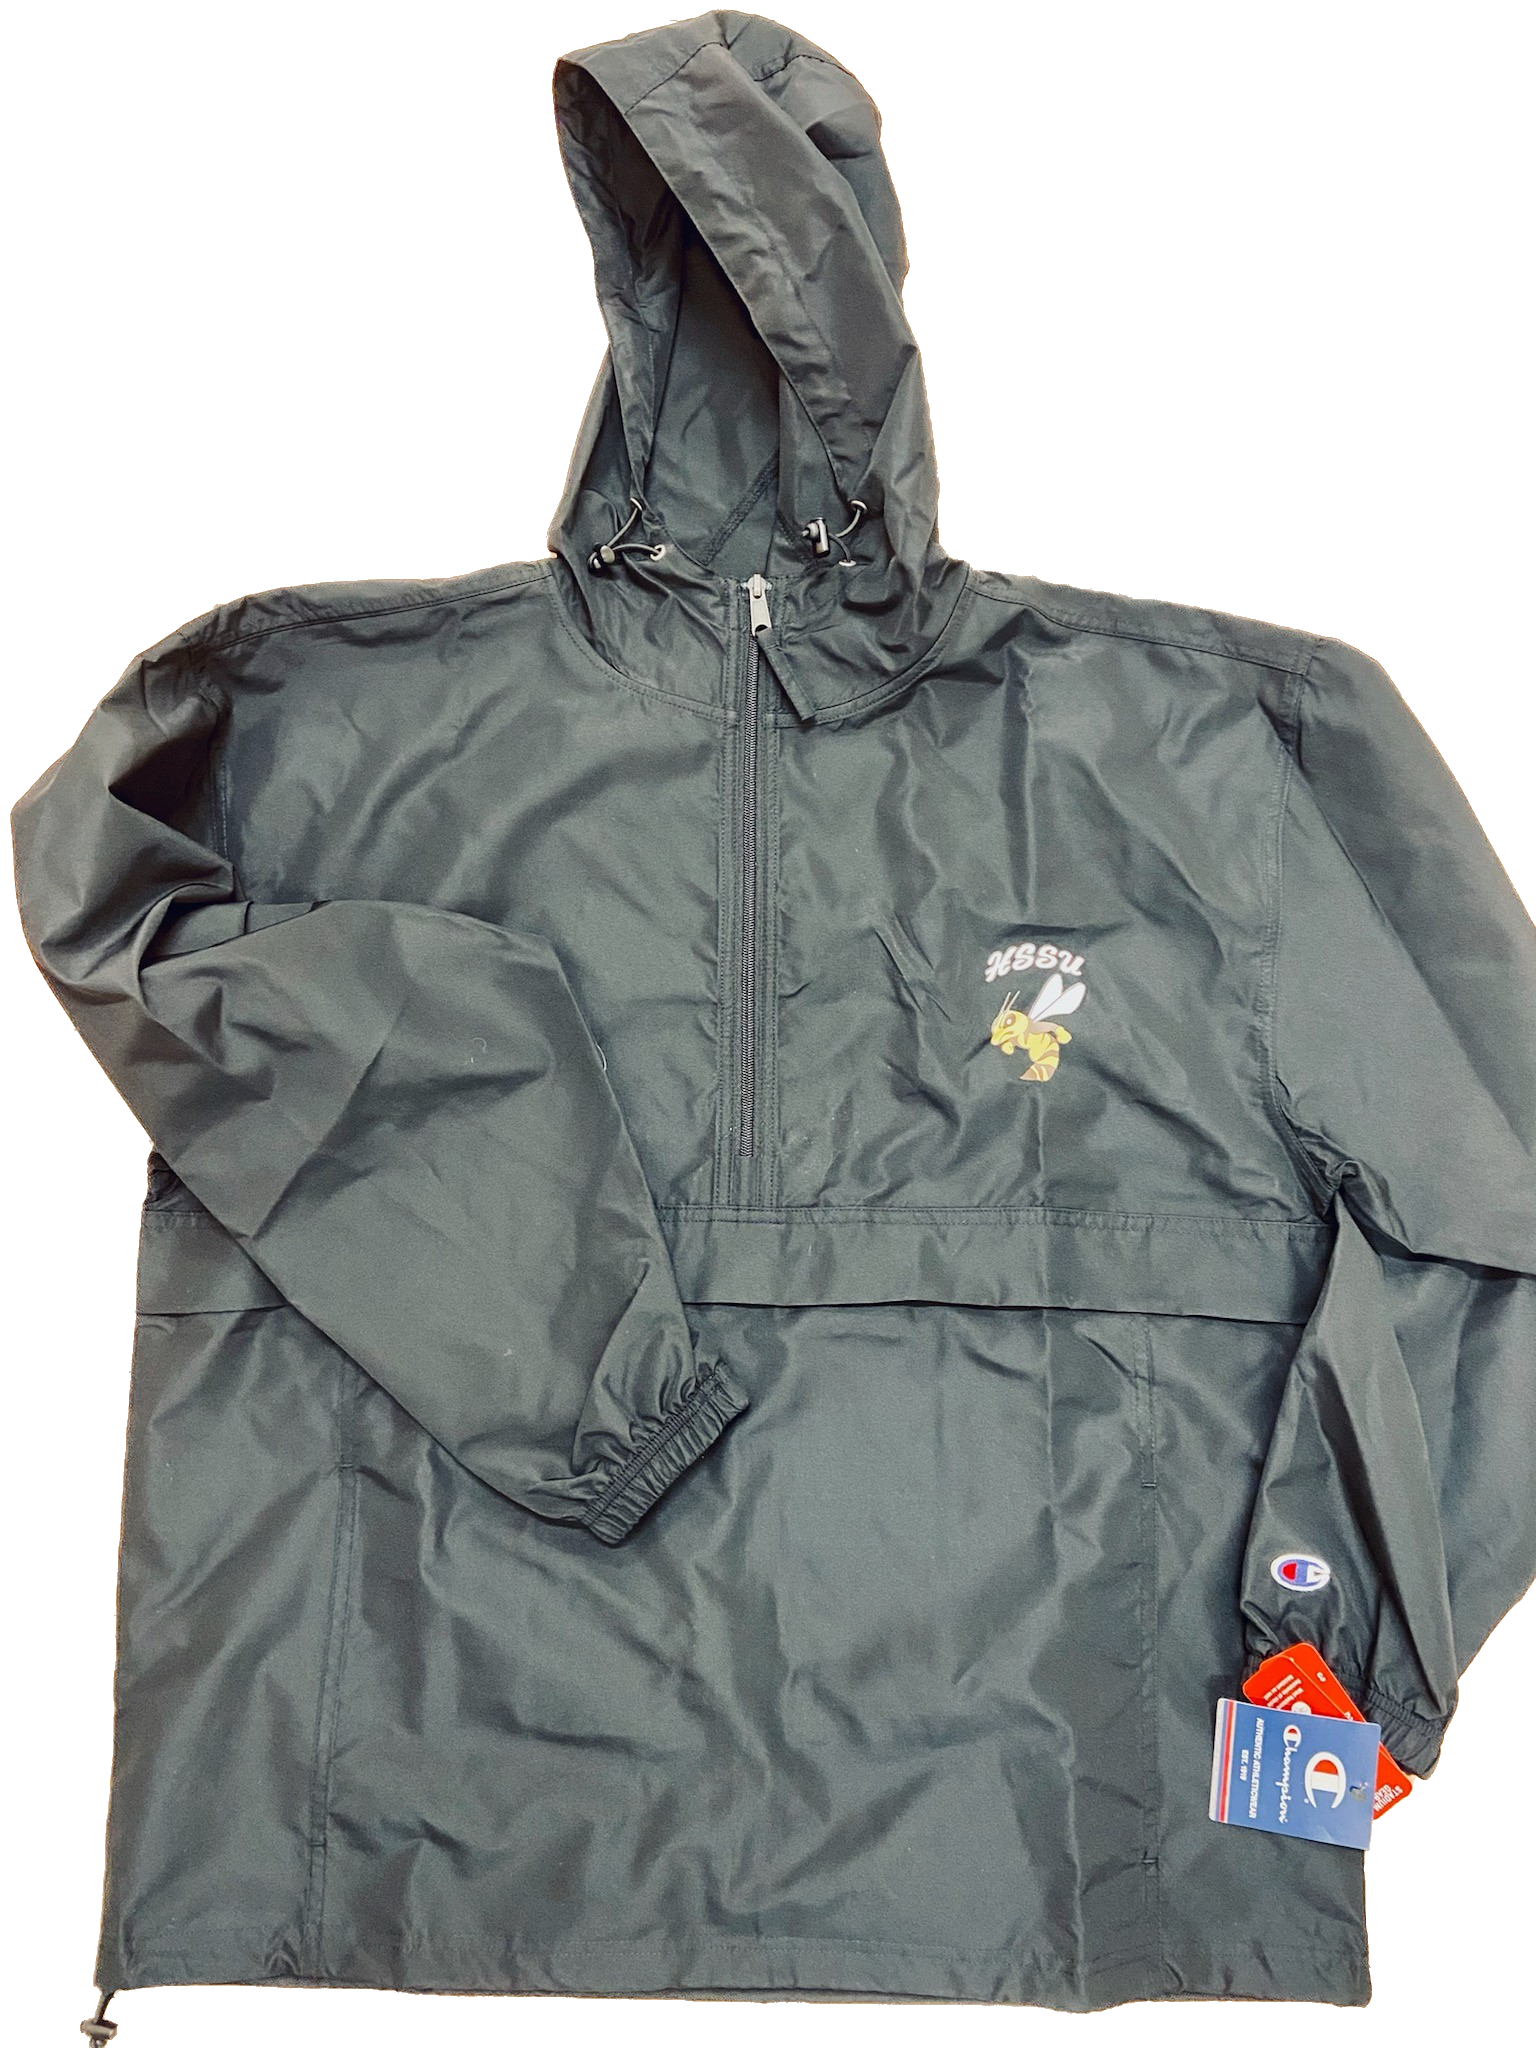 Hornet Packable Windbreaker